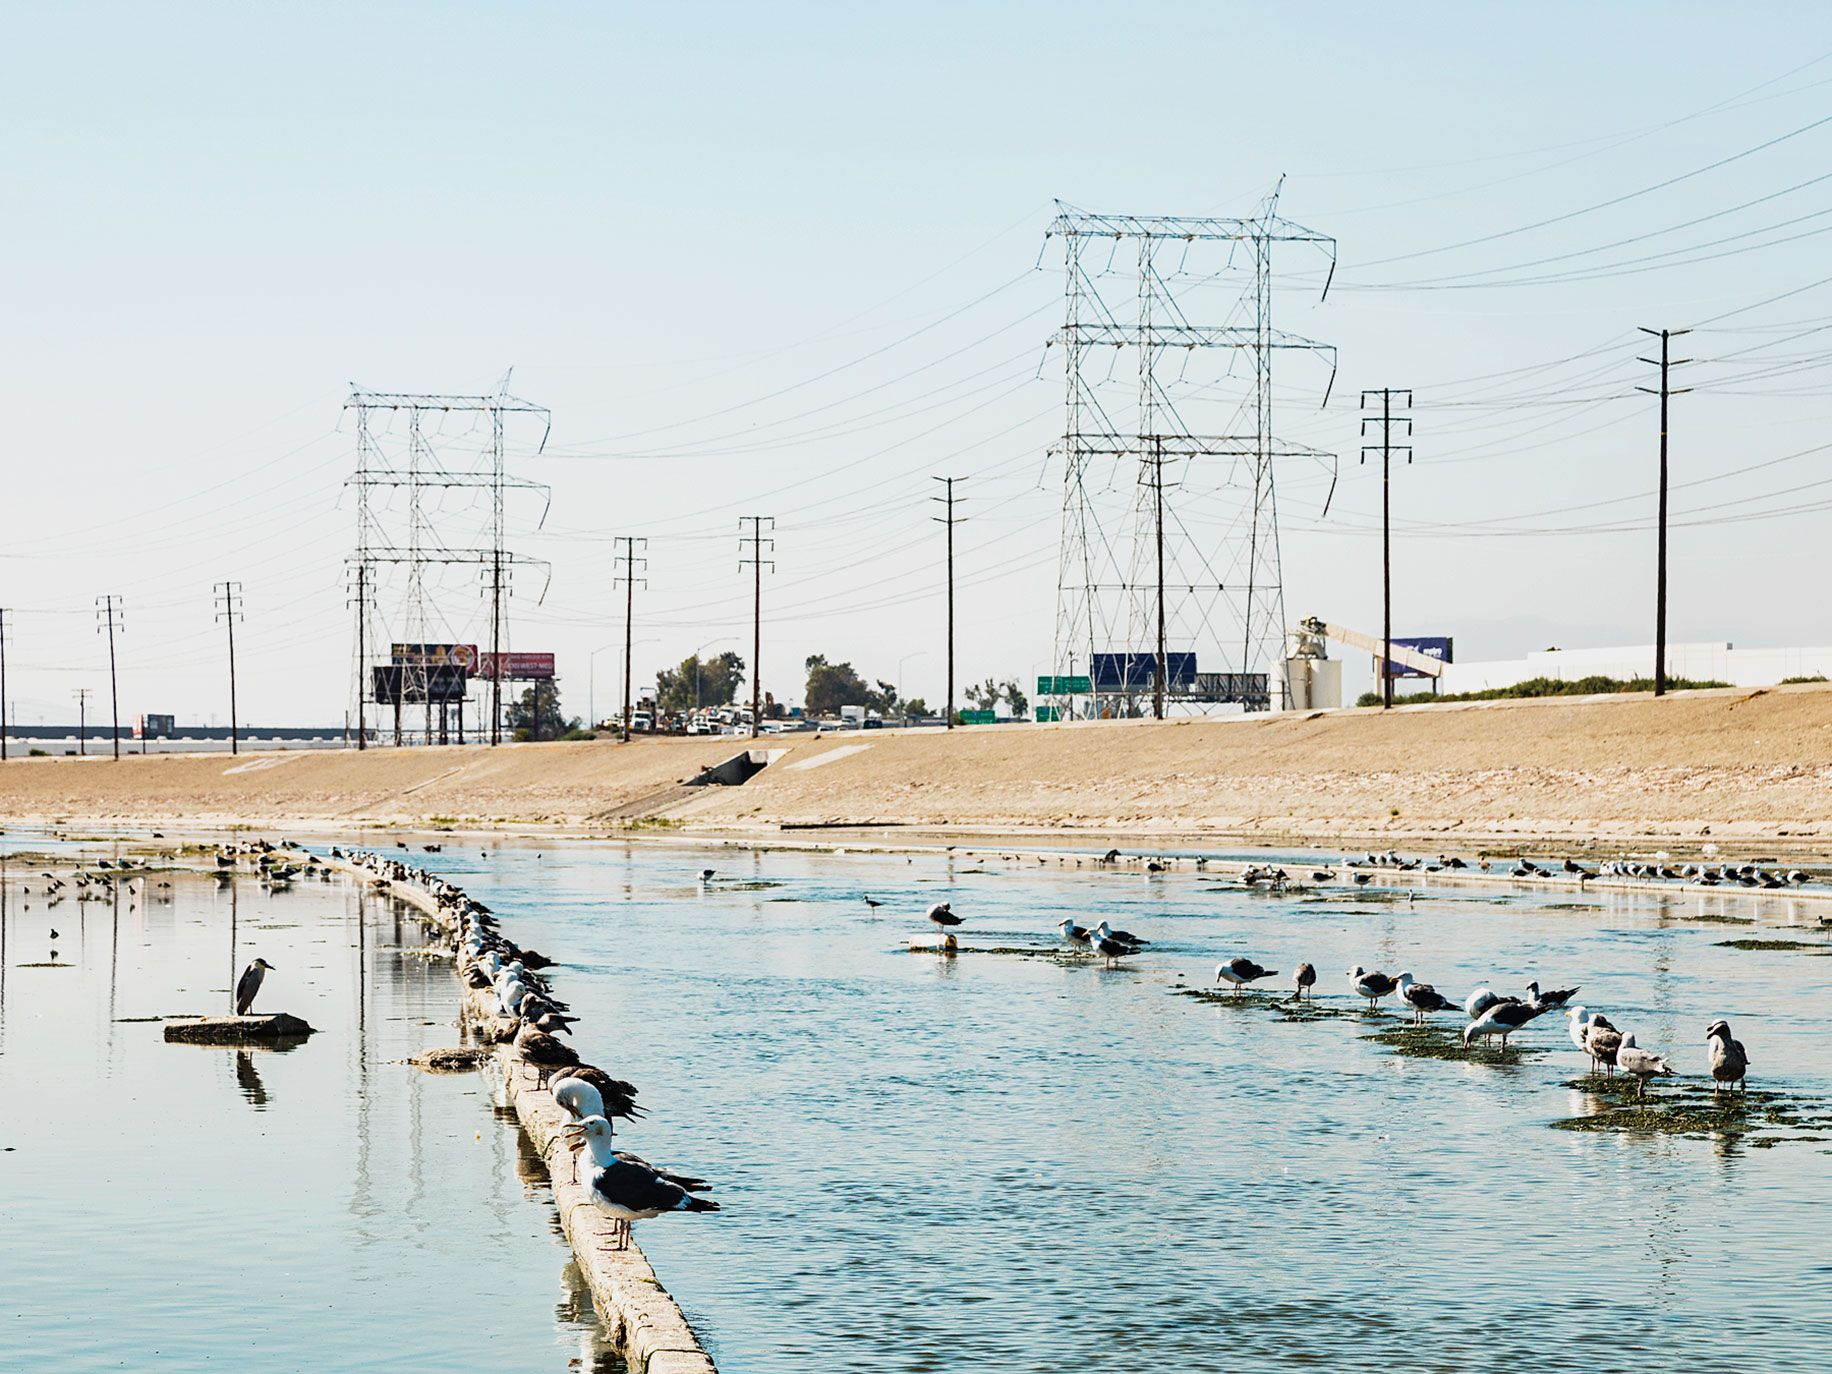 Birds linger in the Maywood area of the Los Angeles River.